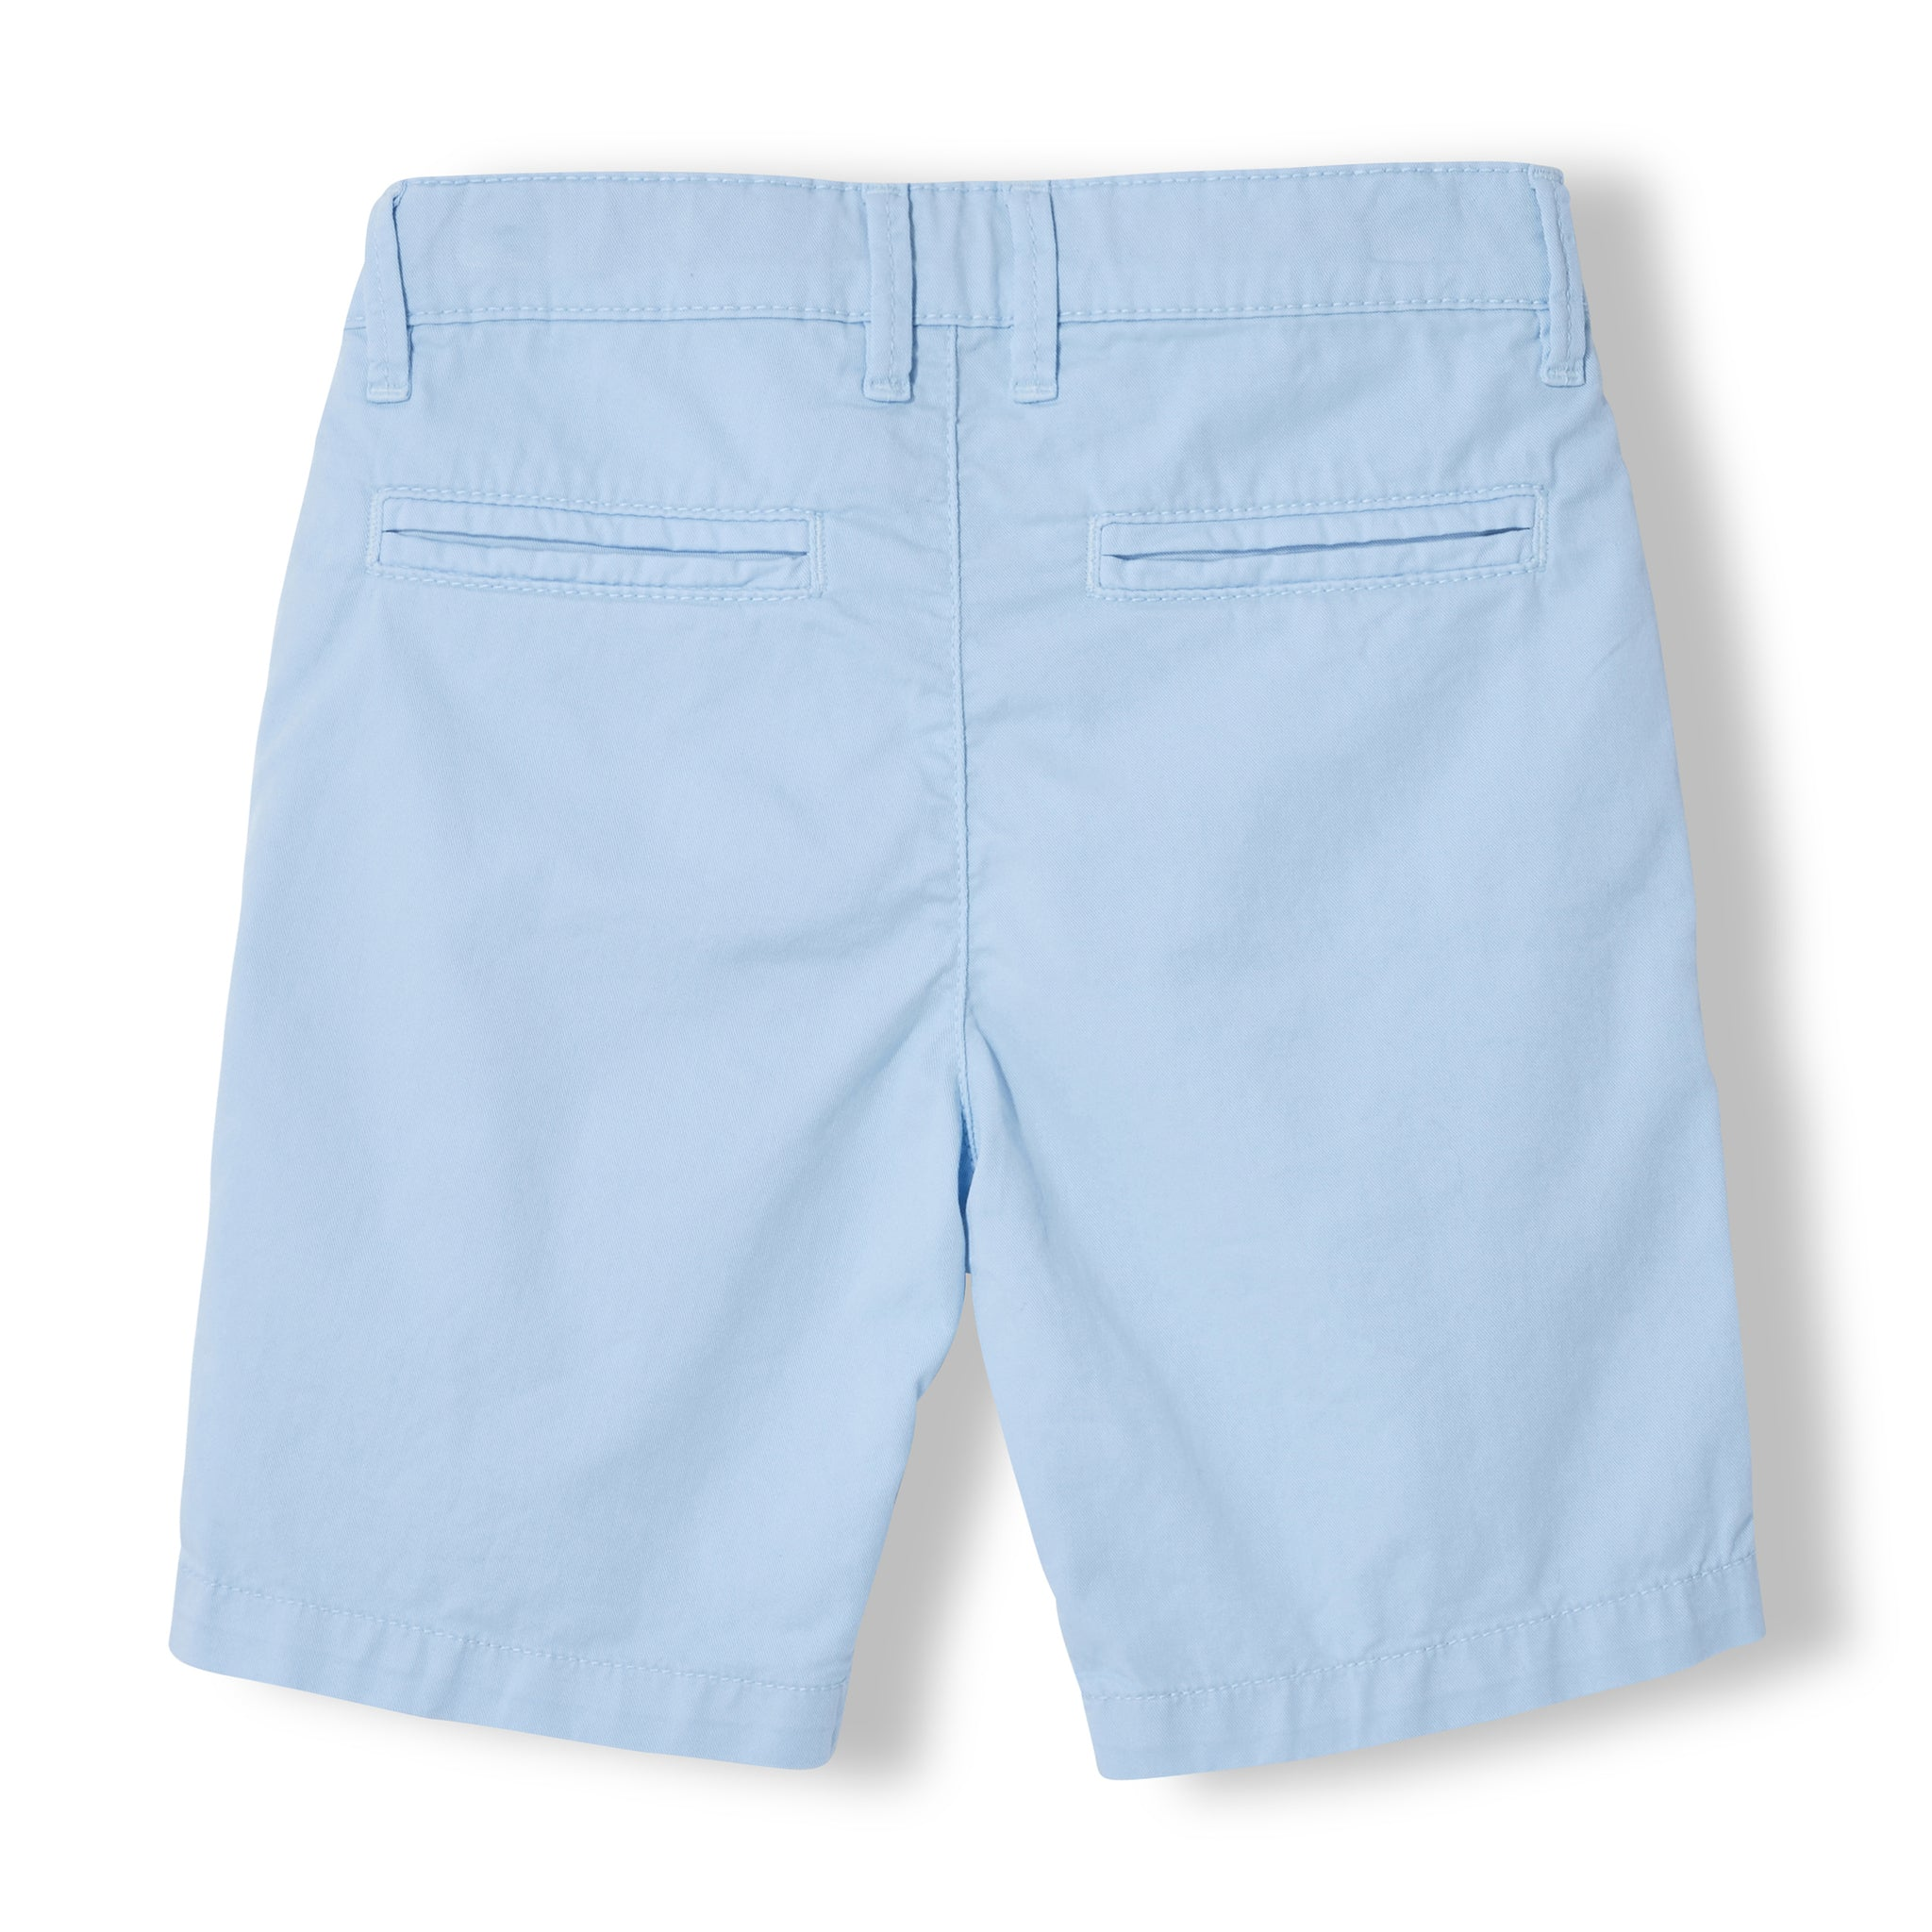 ALLEN Milky Blue - Boy Woven Chino Fit Bermuda  Shorts 2